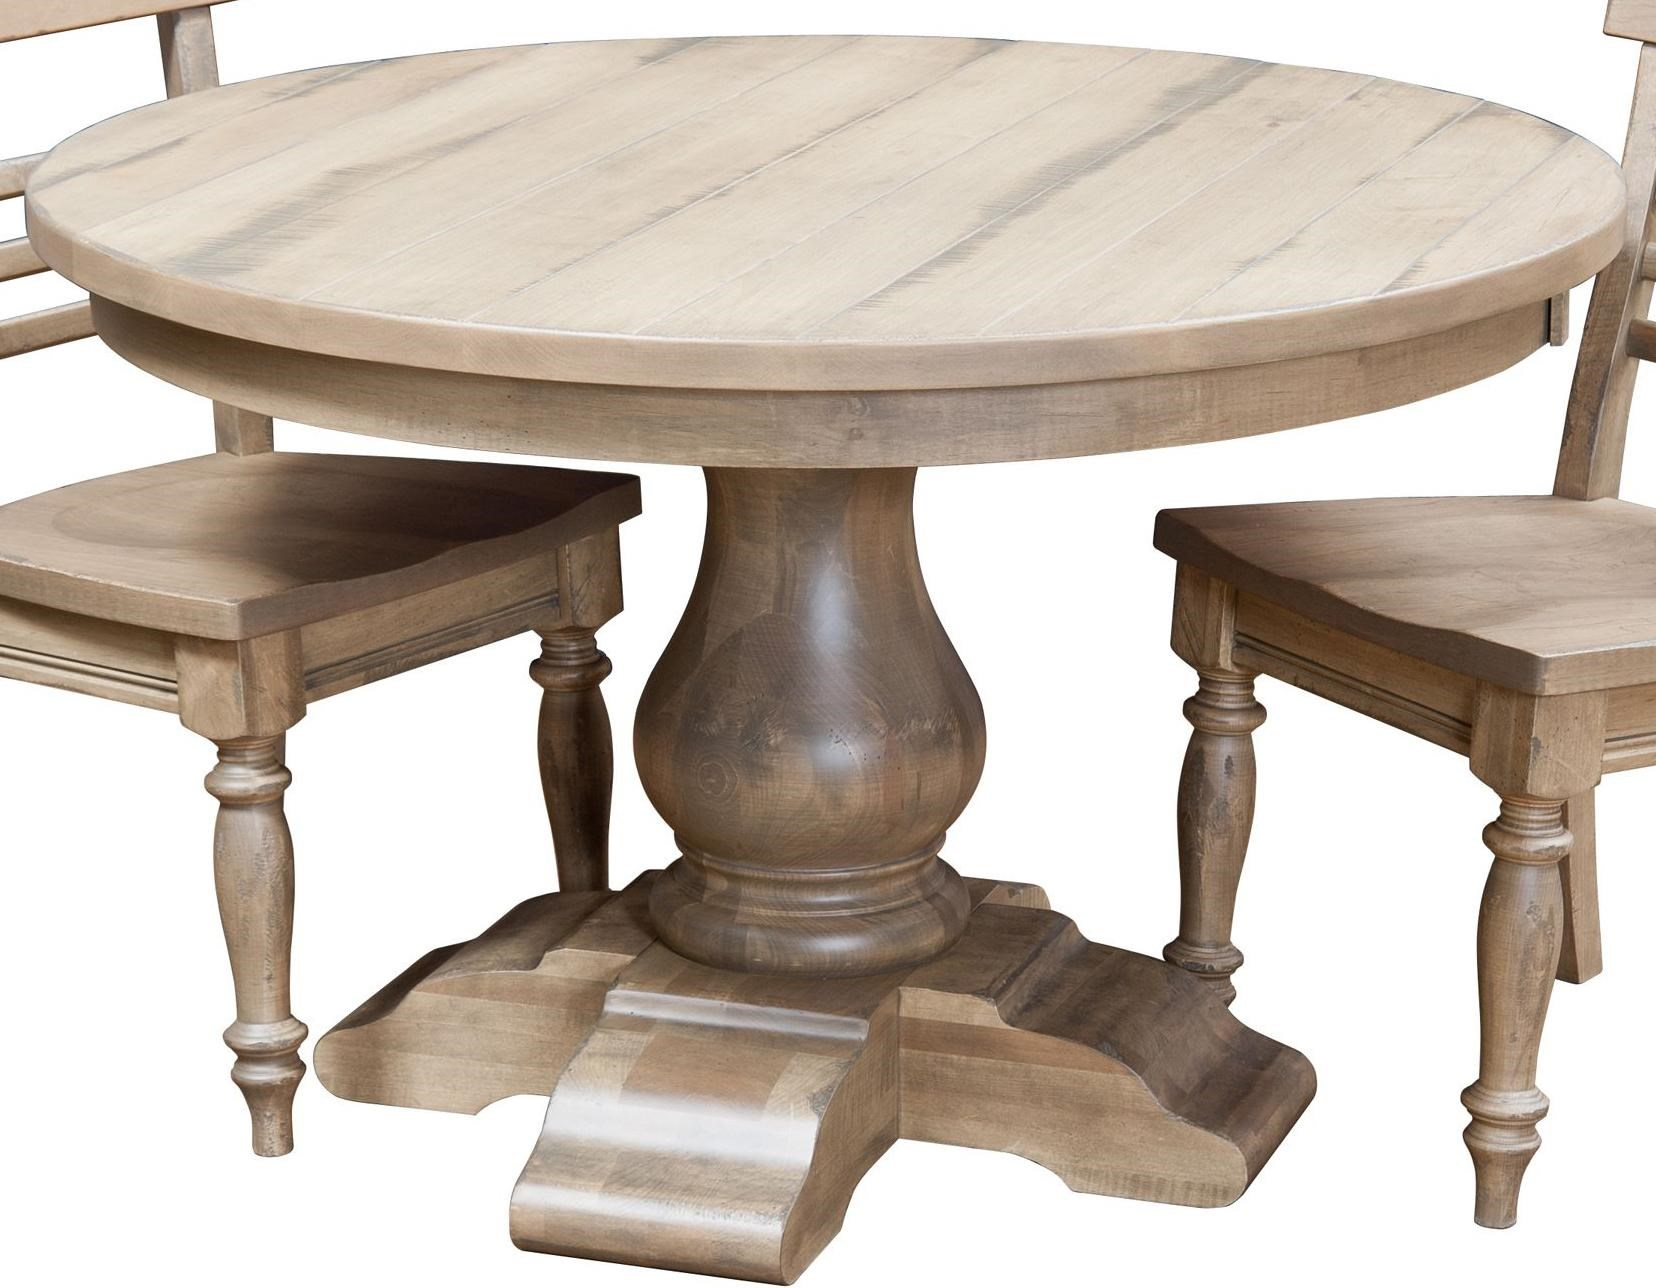 wellington 60 round dining pedestal table morris home kitchen table rh morrisathome com 60 round dining room tables with leaves 60 inch round dining room set